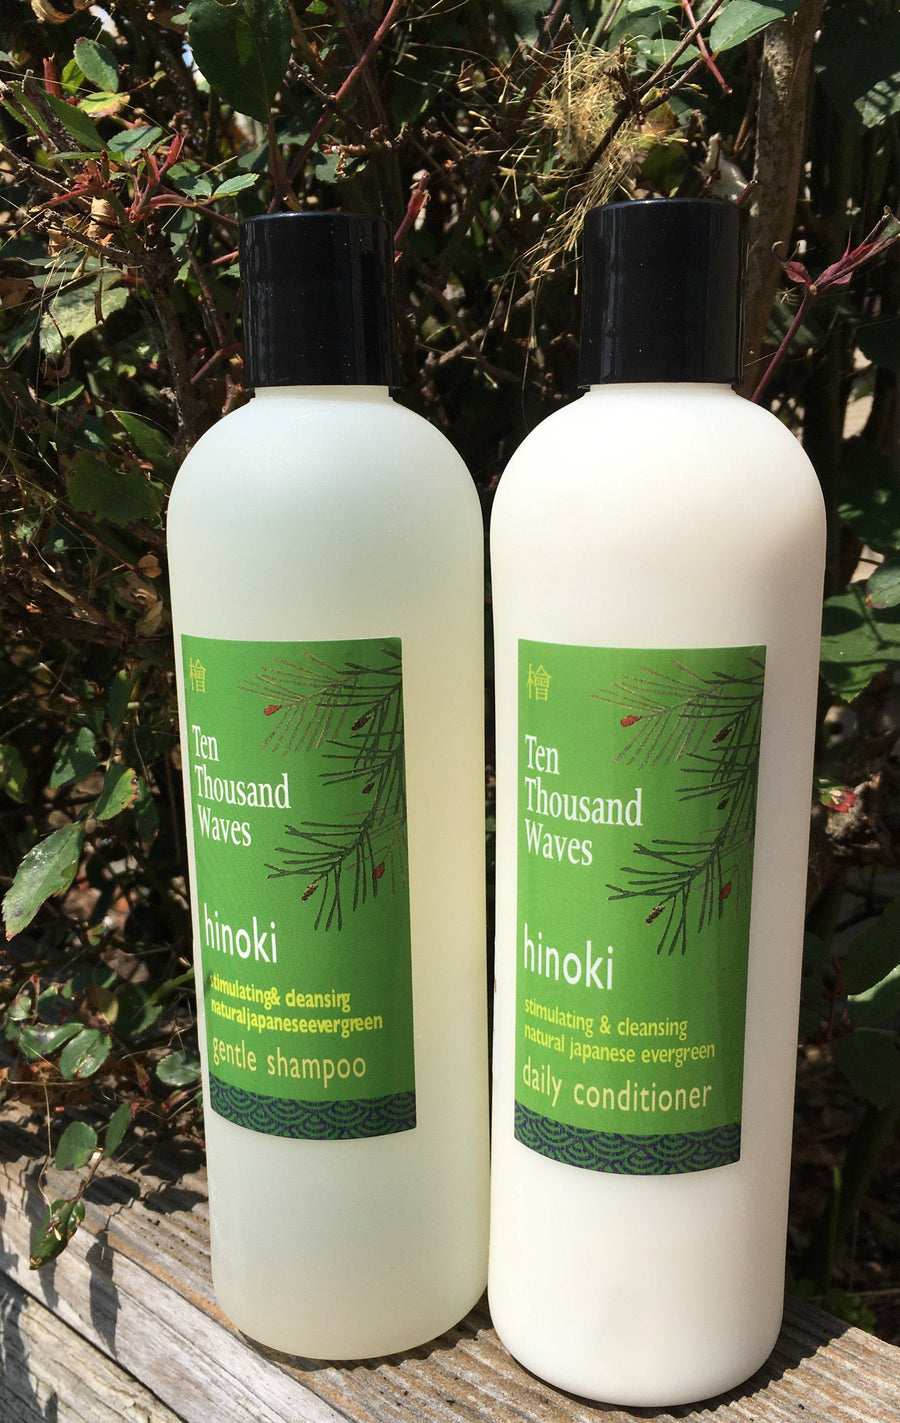 10,000 Waves, Hinoki Conditioner, - Placewares